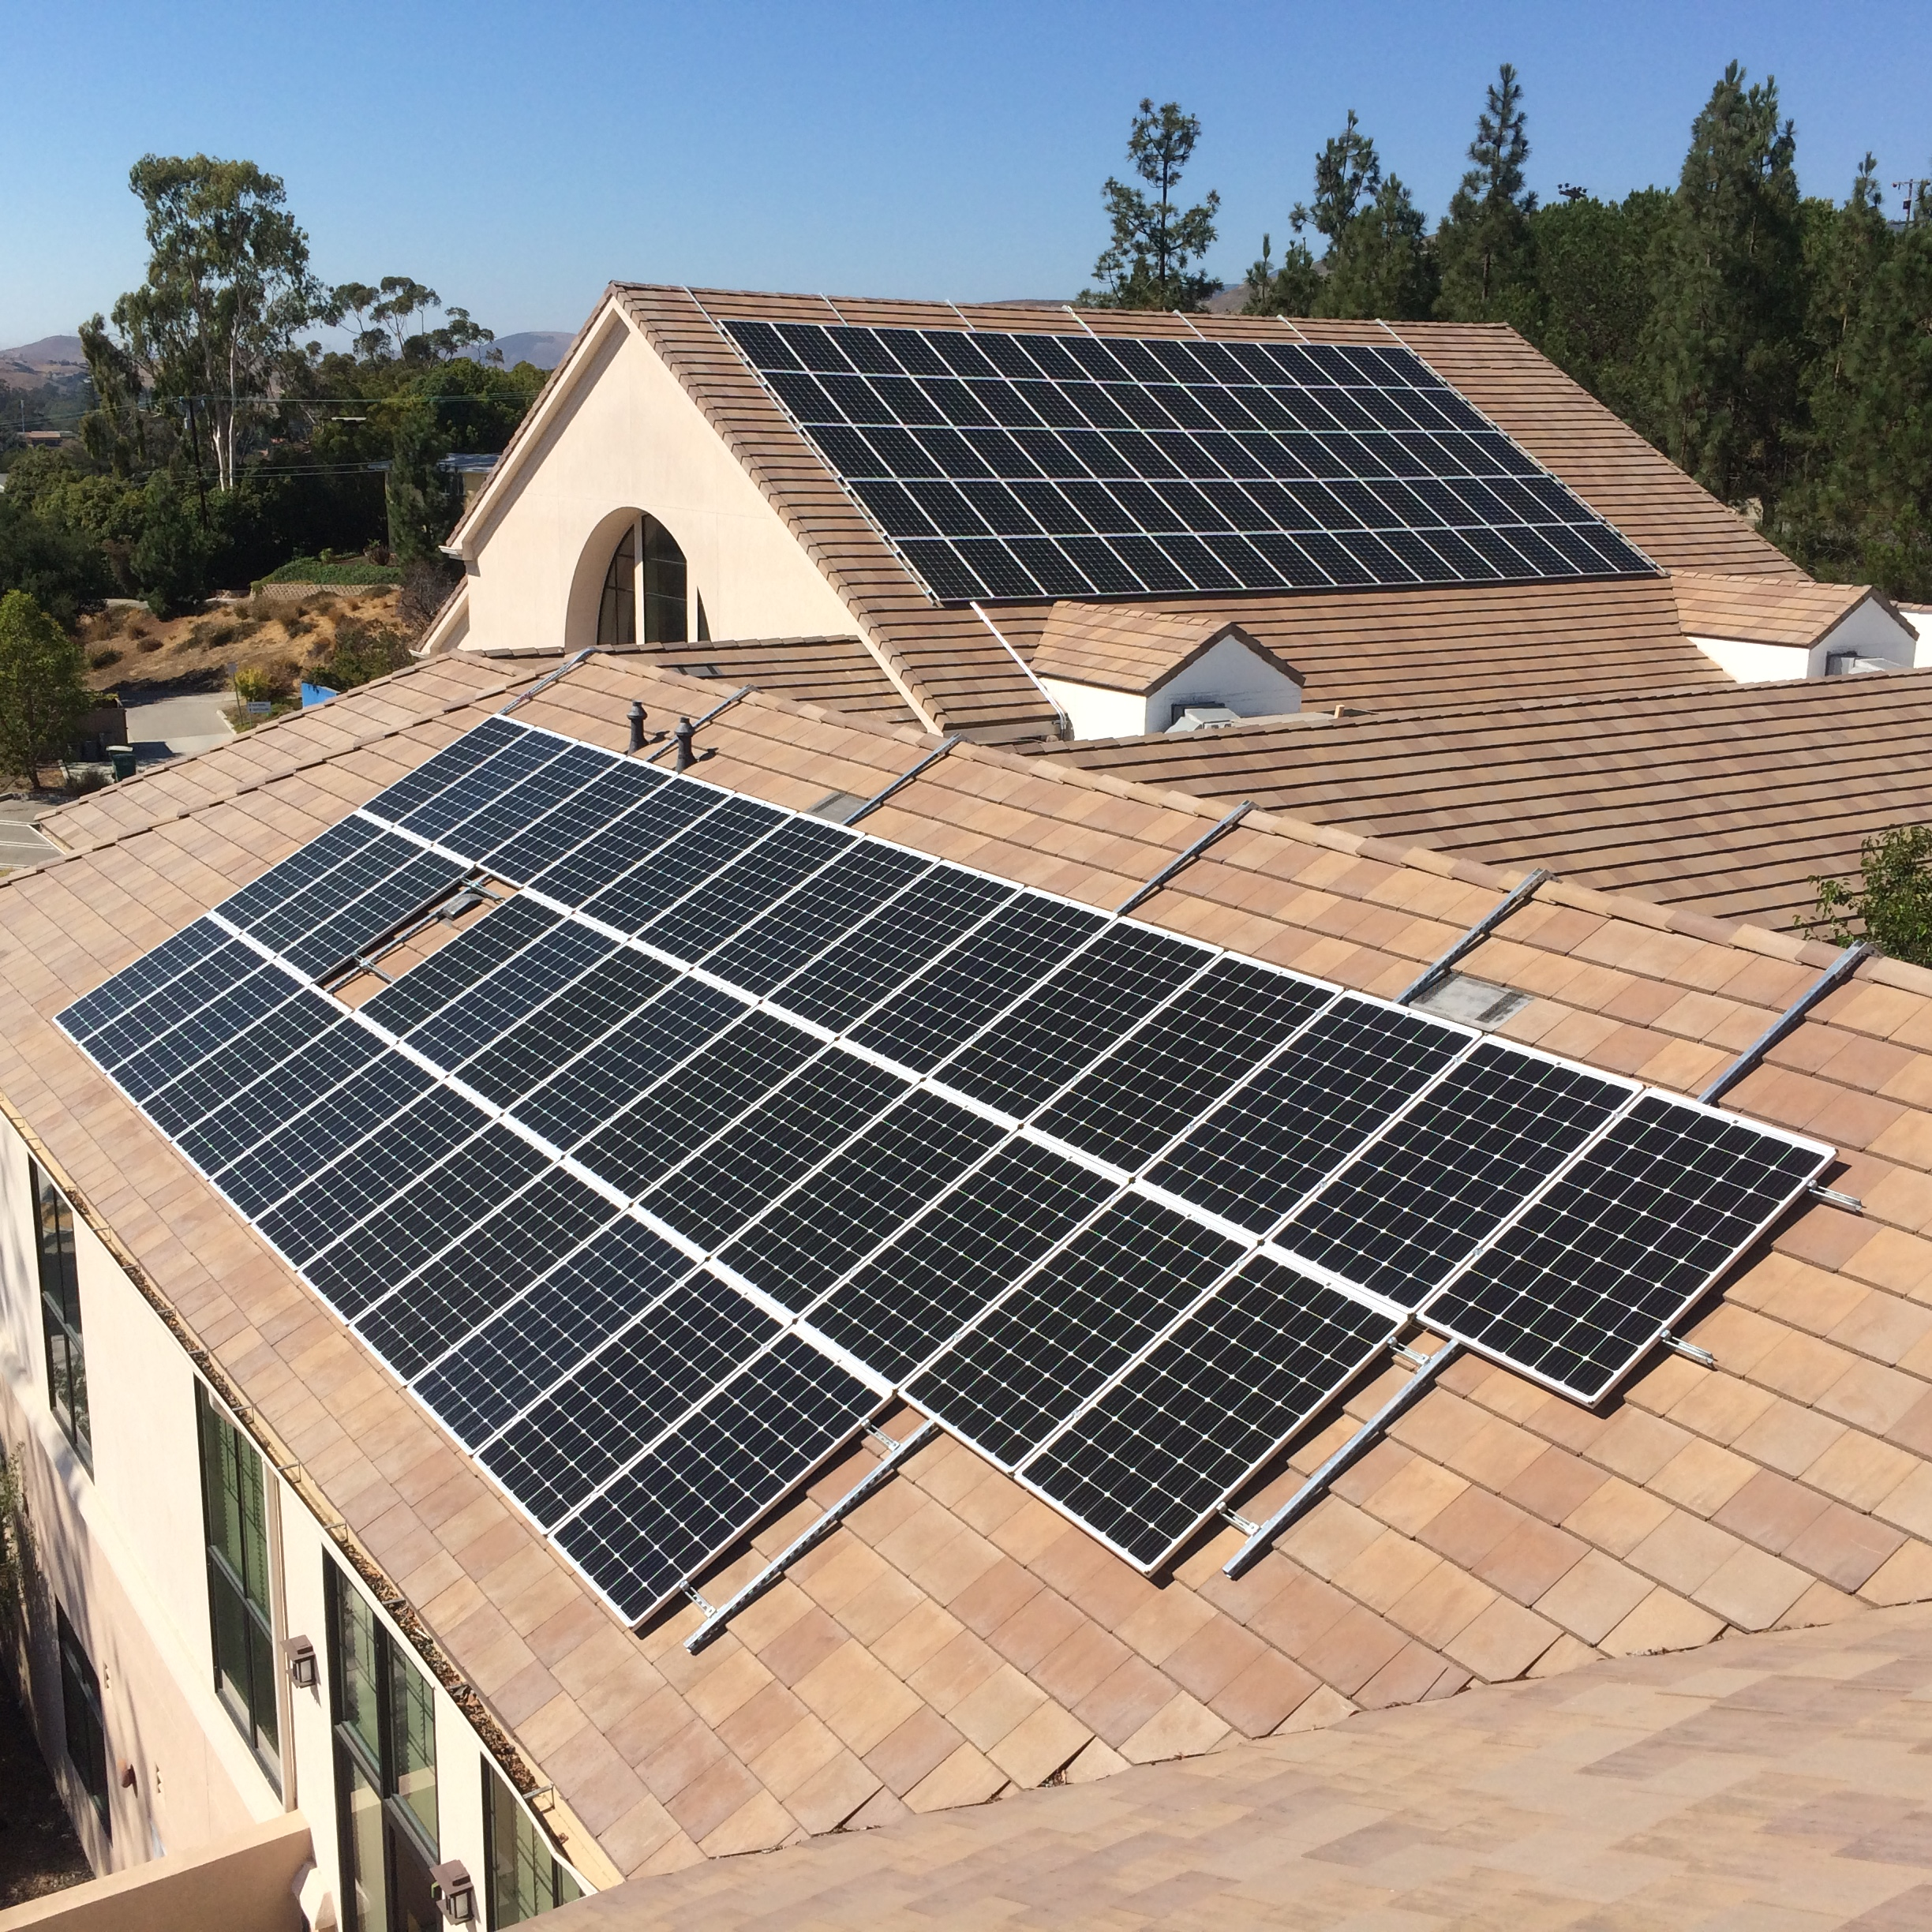 Excellent Is It Possible To Install Solar On A Sloped Roof Without Drilling Holes Wiring Cloud Grayisramohammedshrineorg